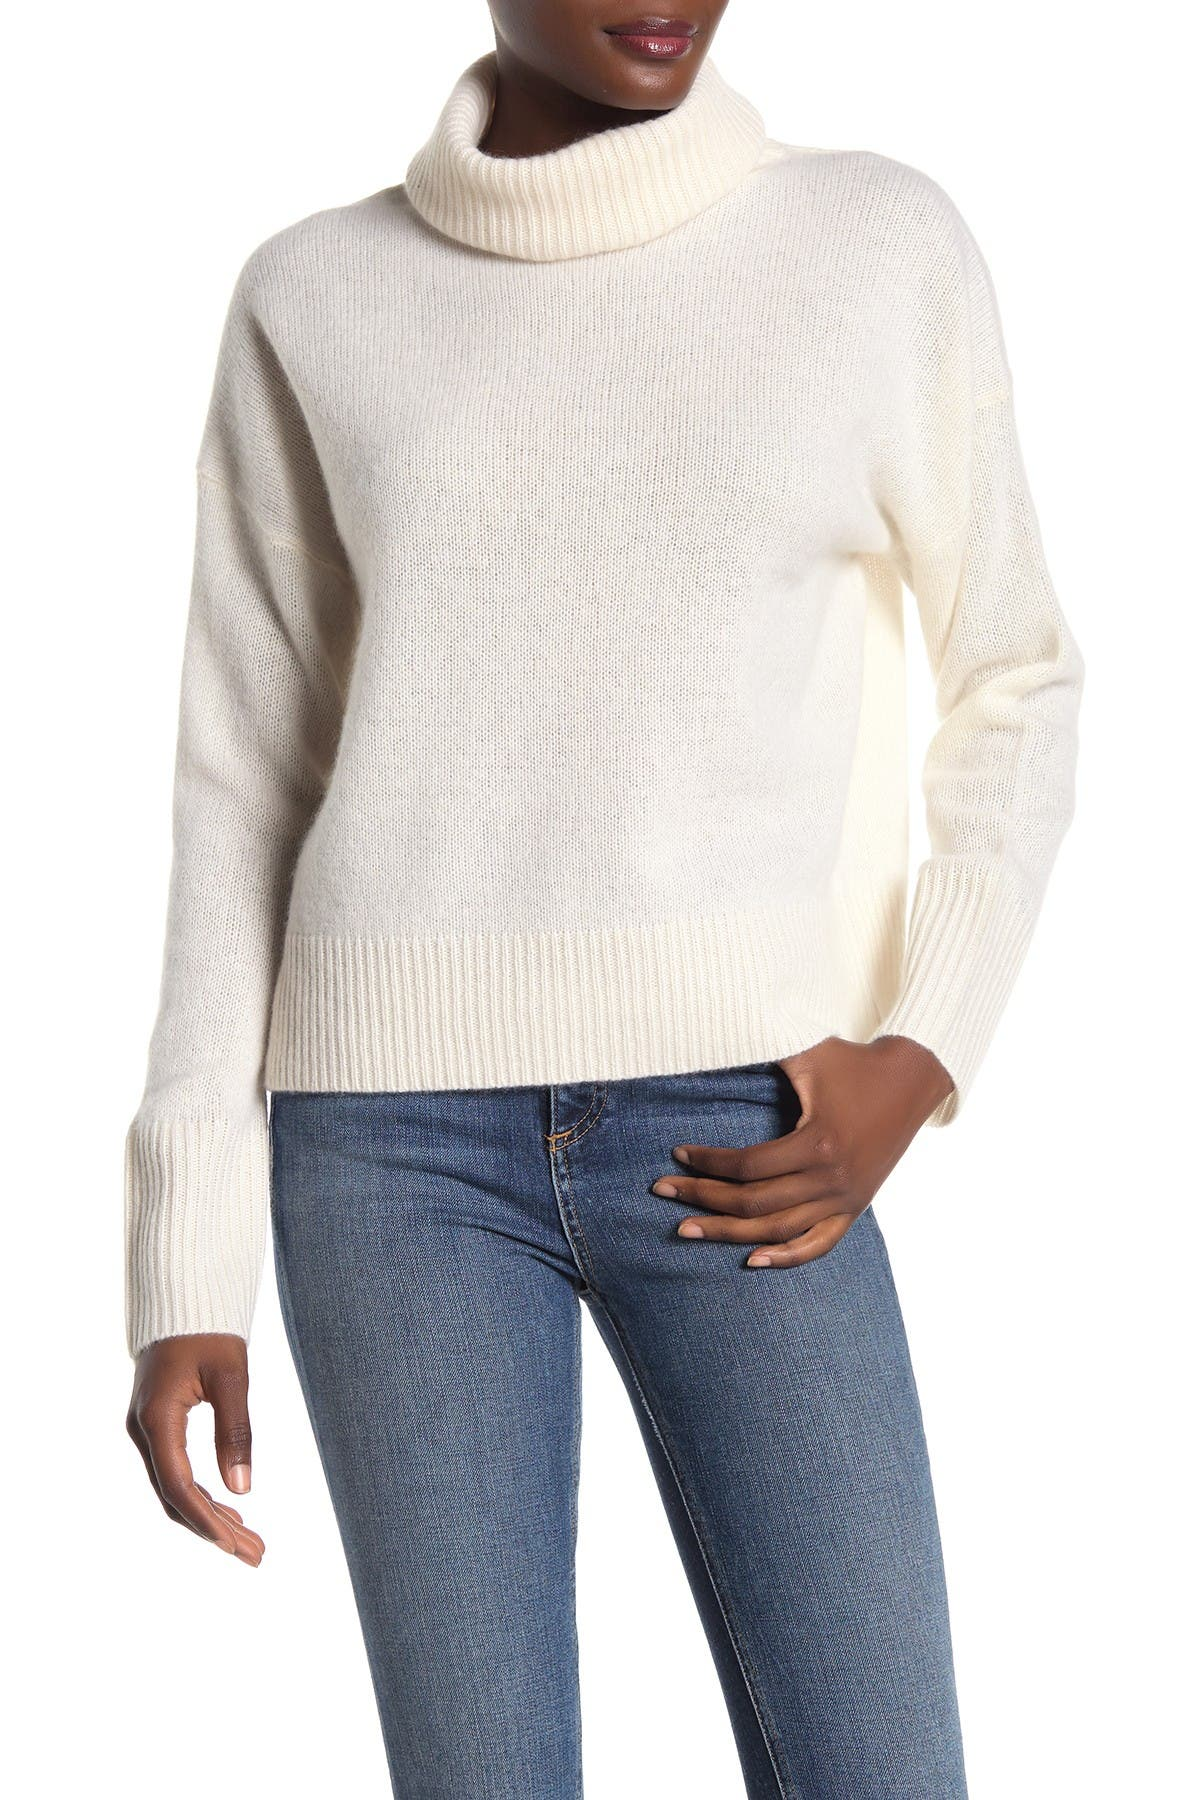 Image of 360 Cashmere Raelynn Turtleneck Cashmere Sweater